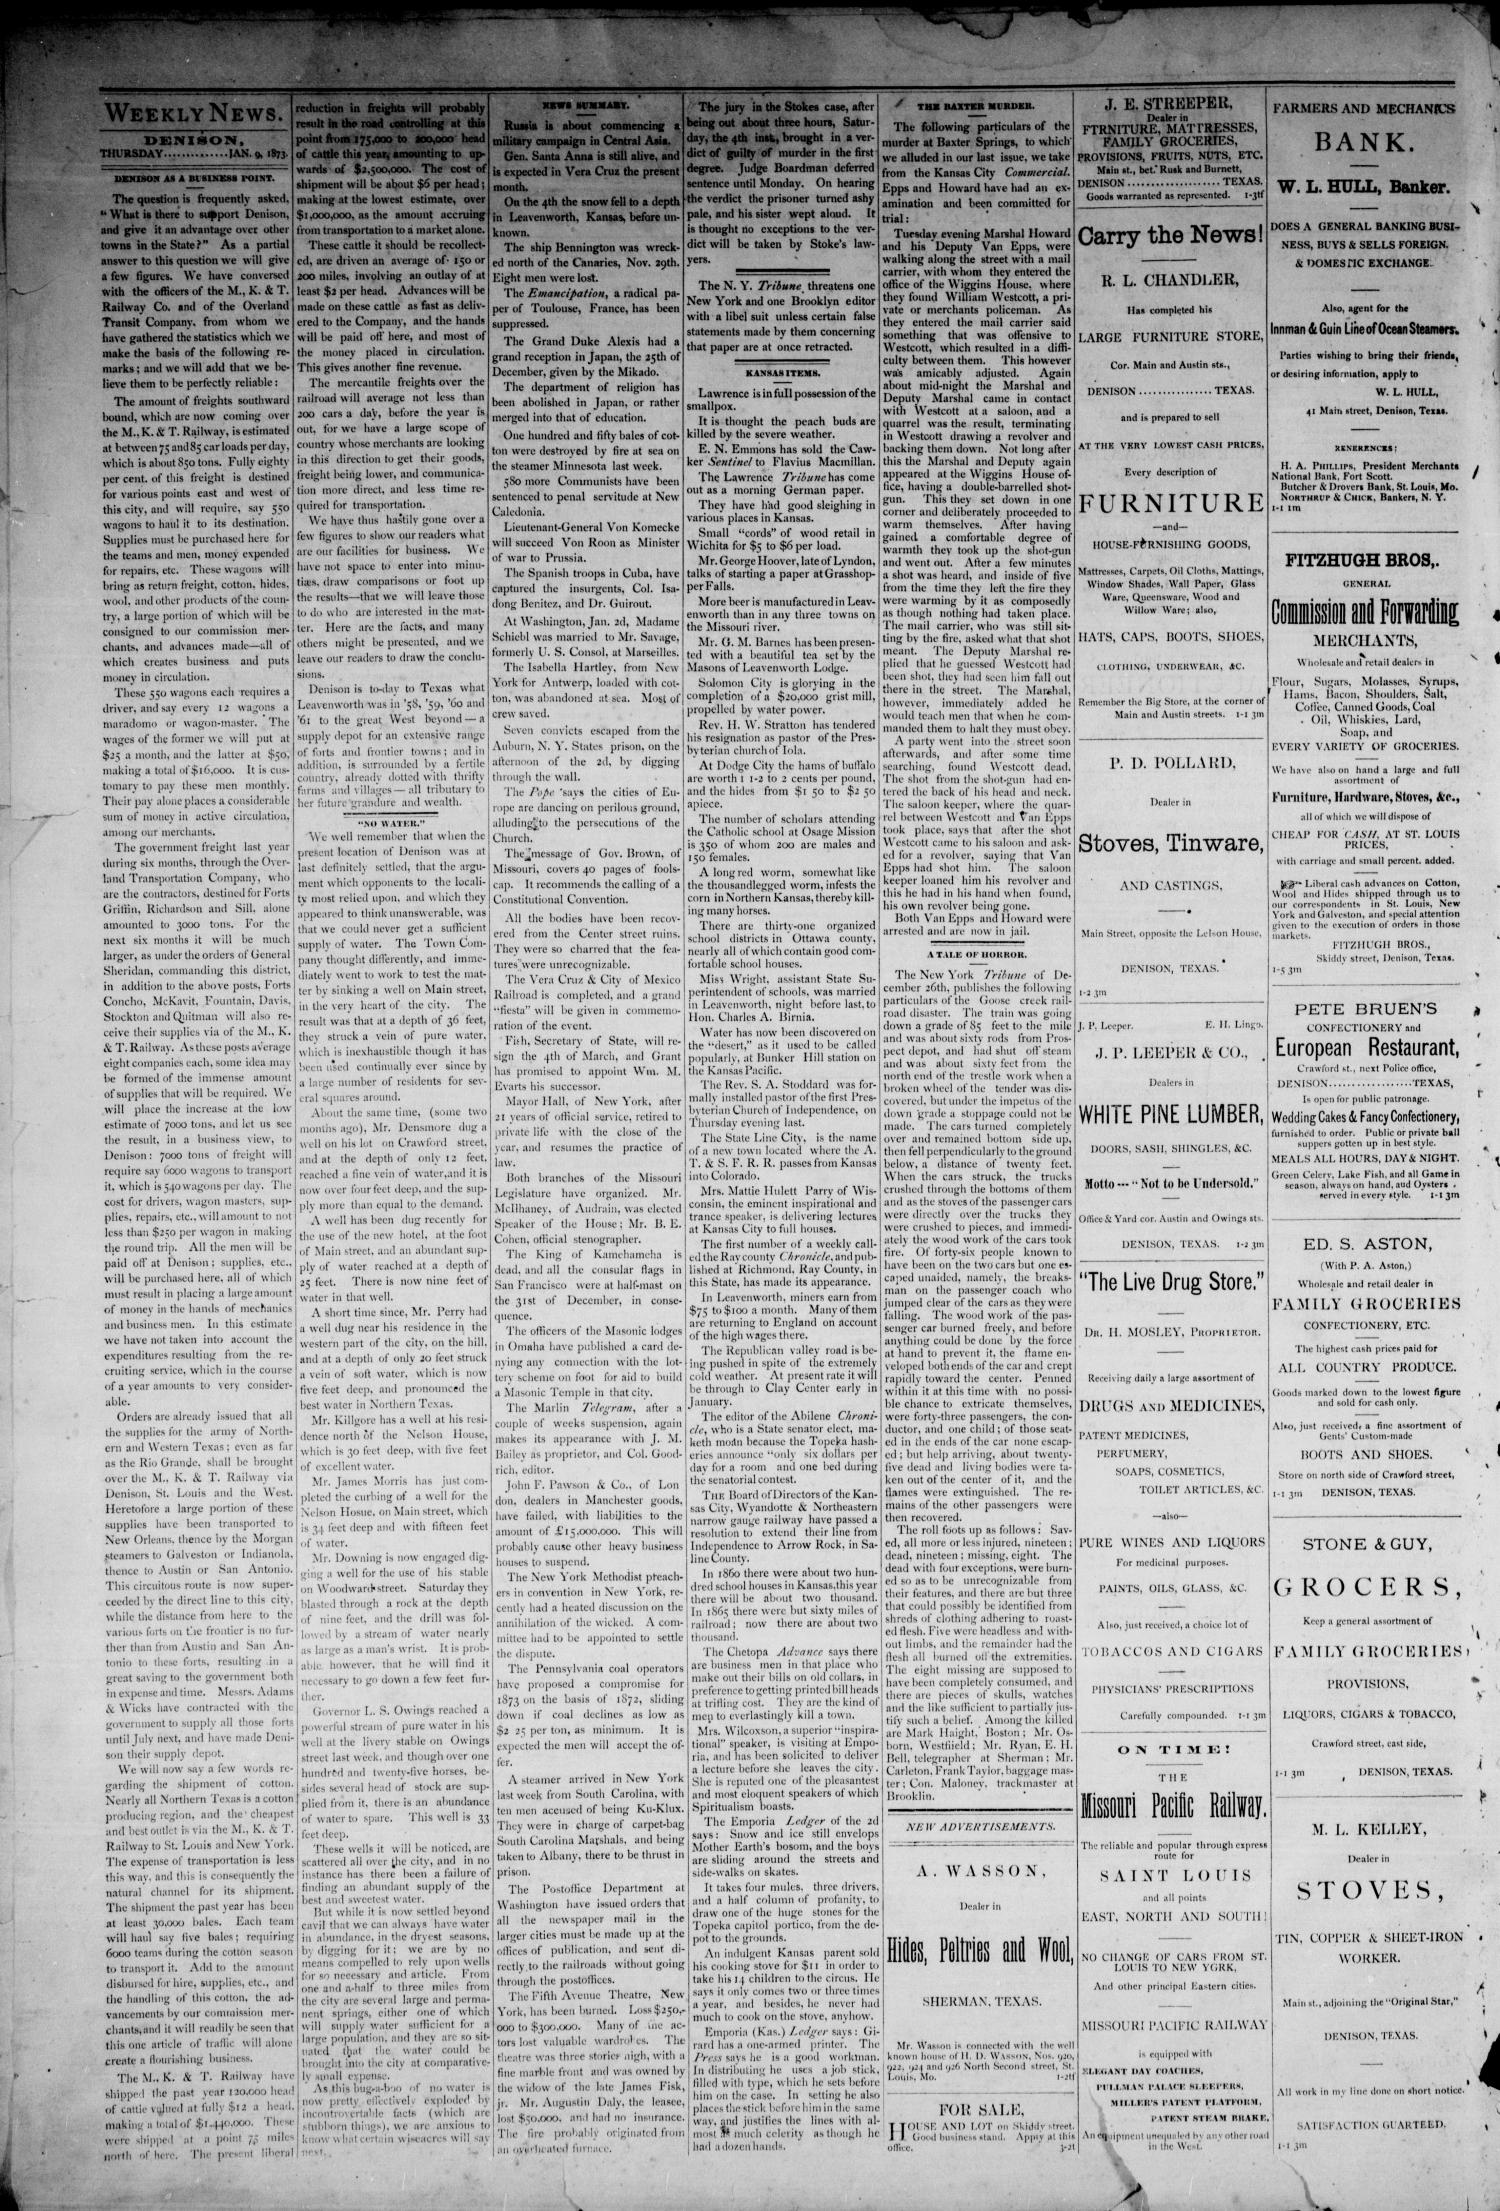 The Denison News. (Denison, Tex.), Vol. 1, No. 3, Ed. 1 Thursday, January 9, 1873                                                                                                      [Sequence #]: 2 of 4